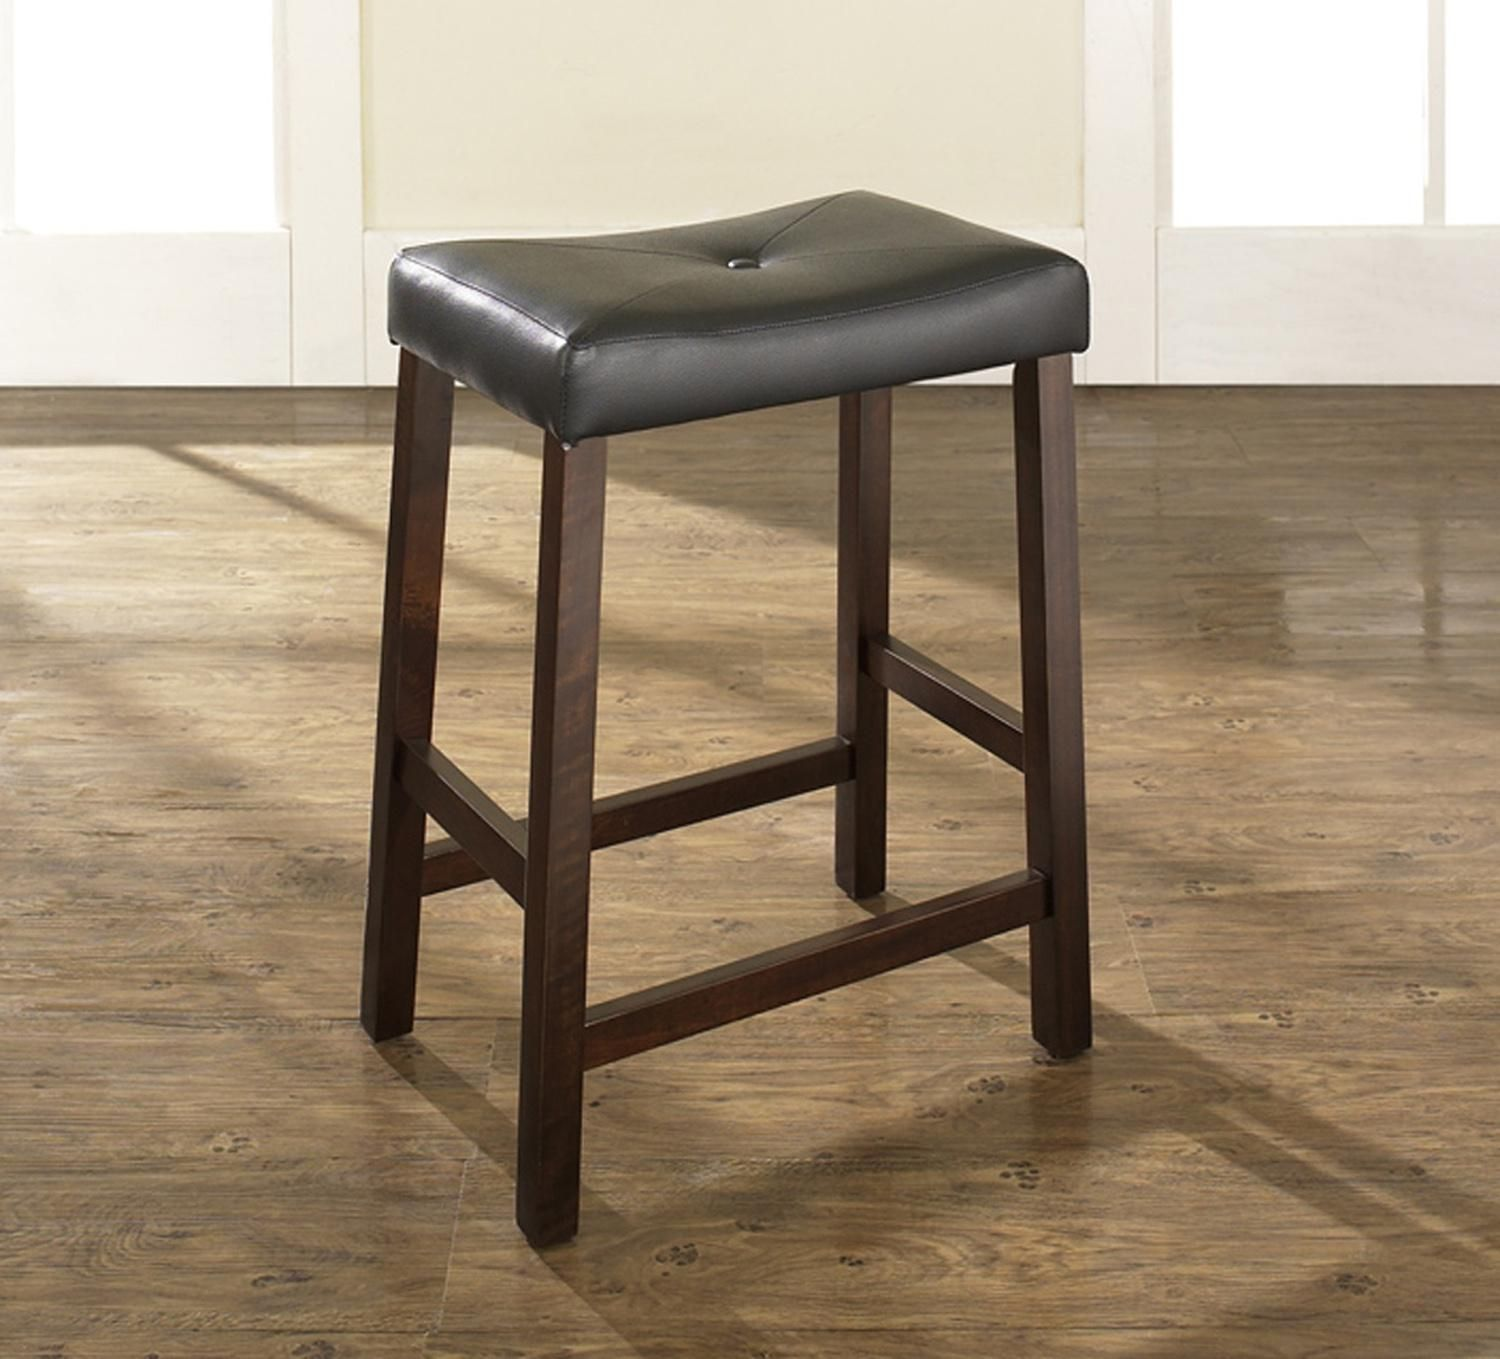 20 Bar Stools 24 Inch Seat Height Contemporary Modern Furniture